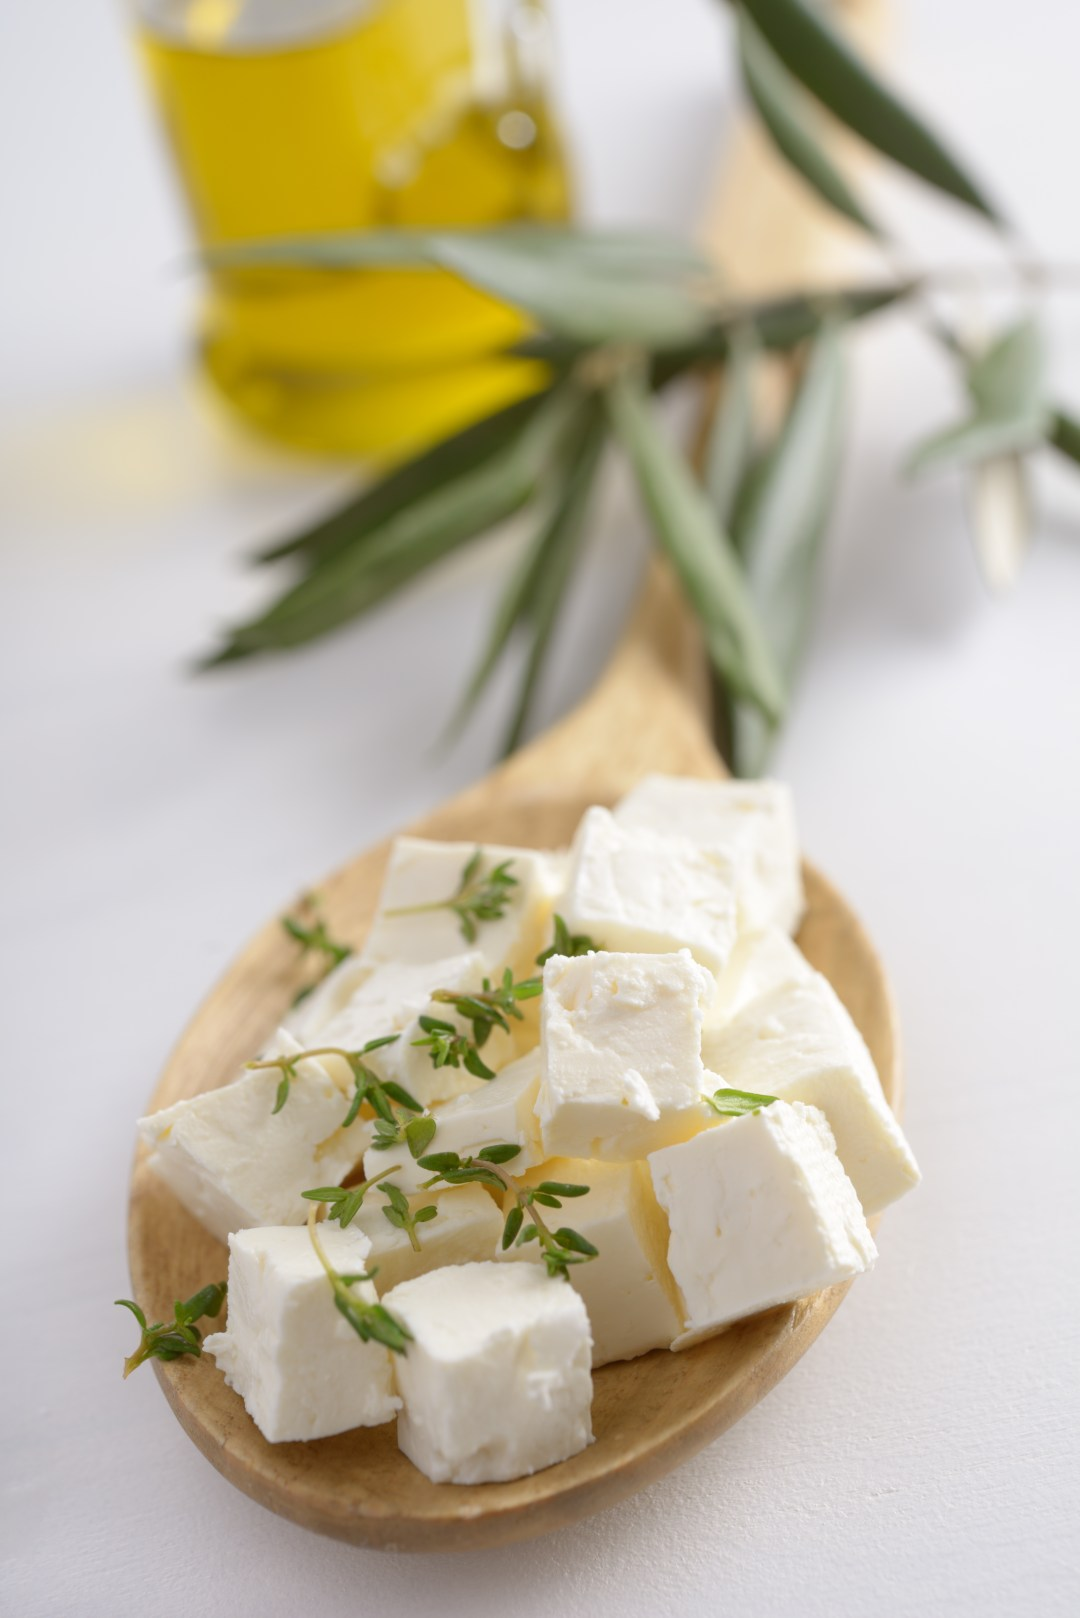 shutterstock_126397562-Diced feta cheese in a wooden spoon against olive oil